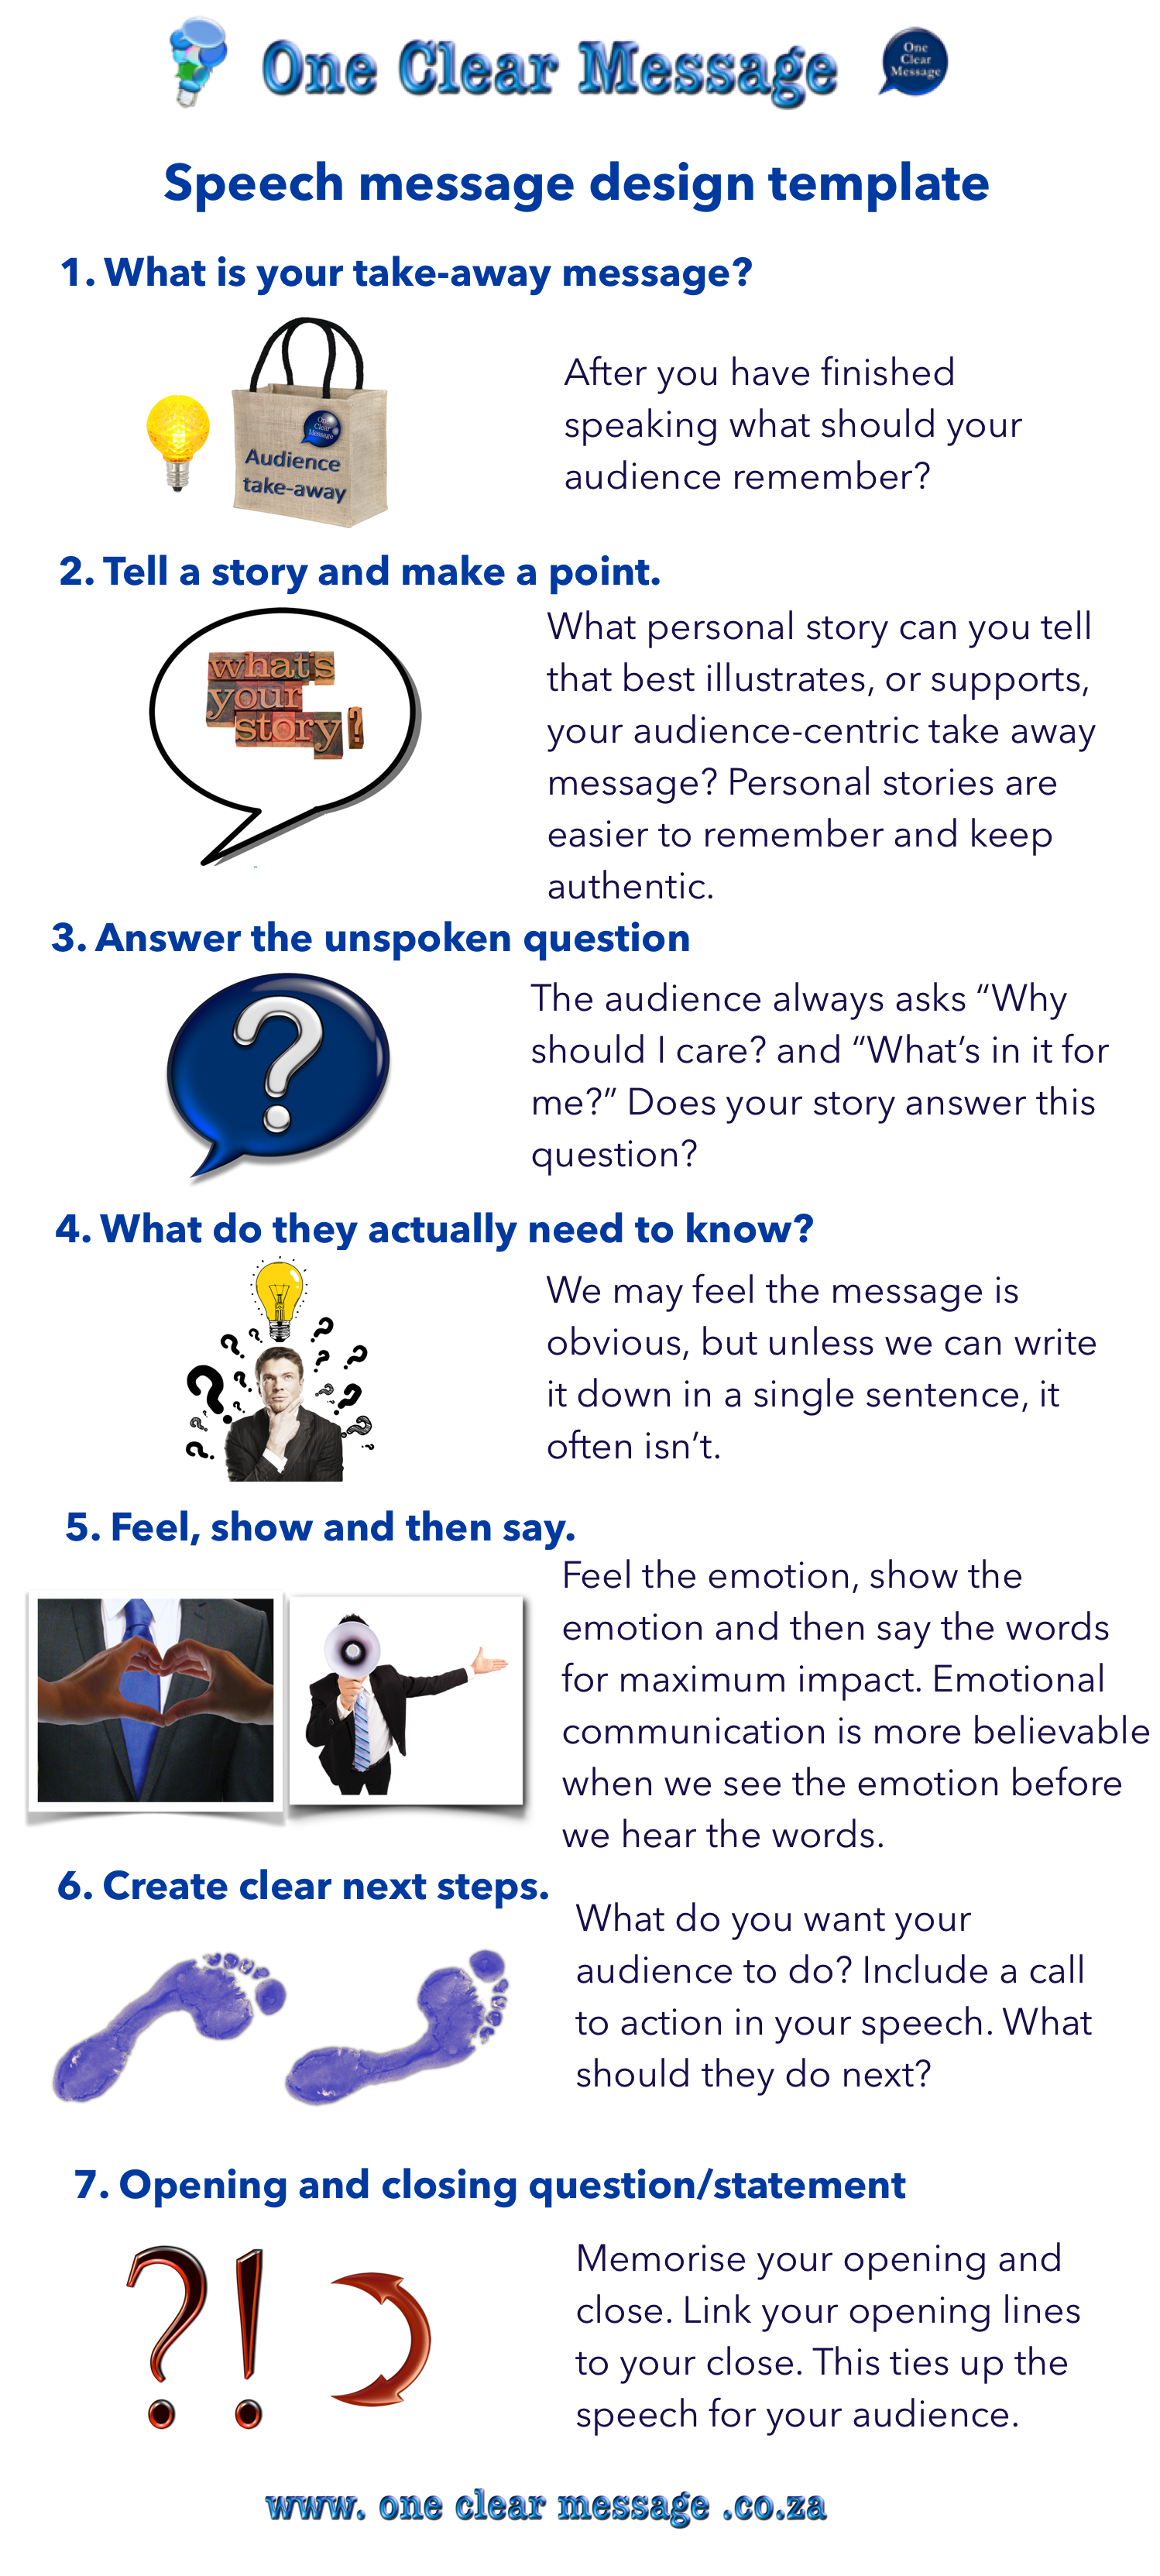 One Clear Message basic speech construction design template